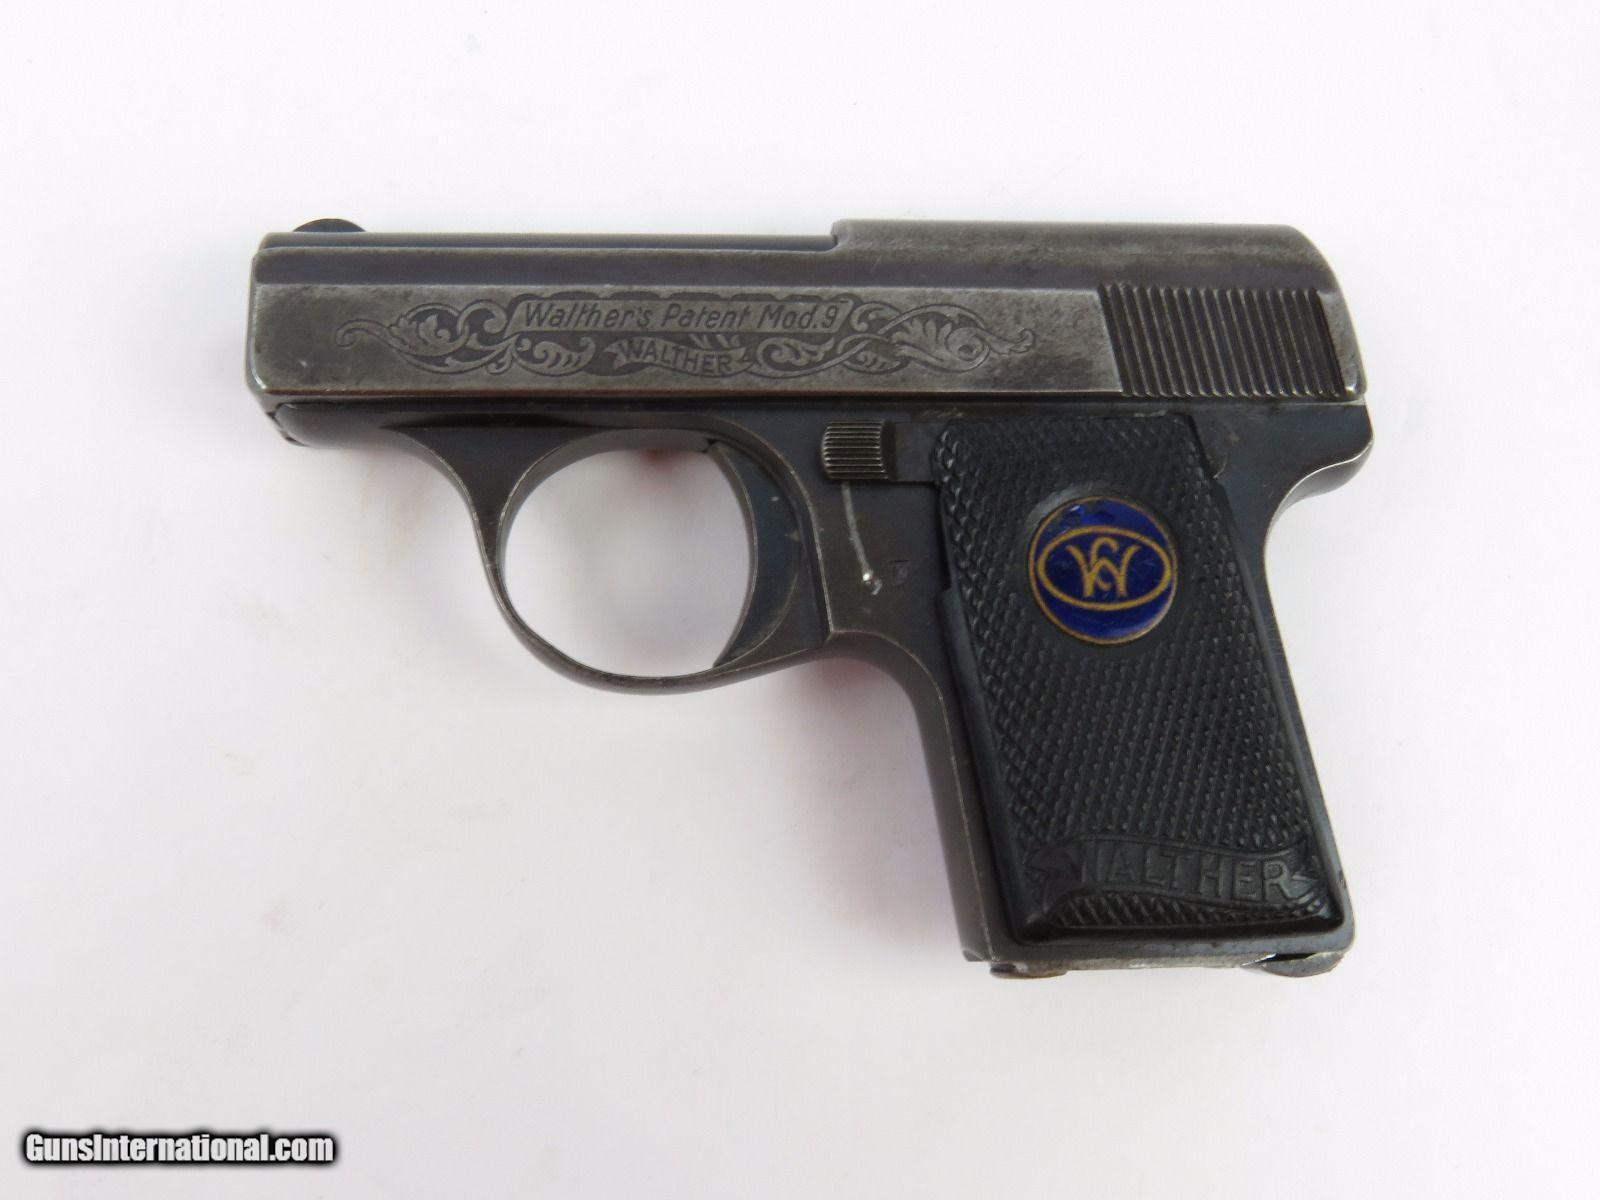 engraved walther model 9 pistol 6 35mm 25 caliber pre ww2 wwii